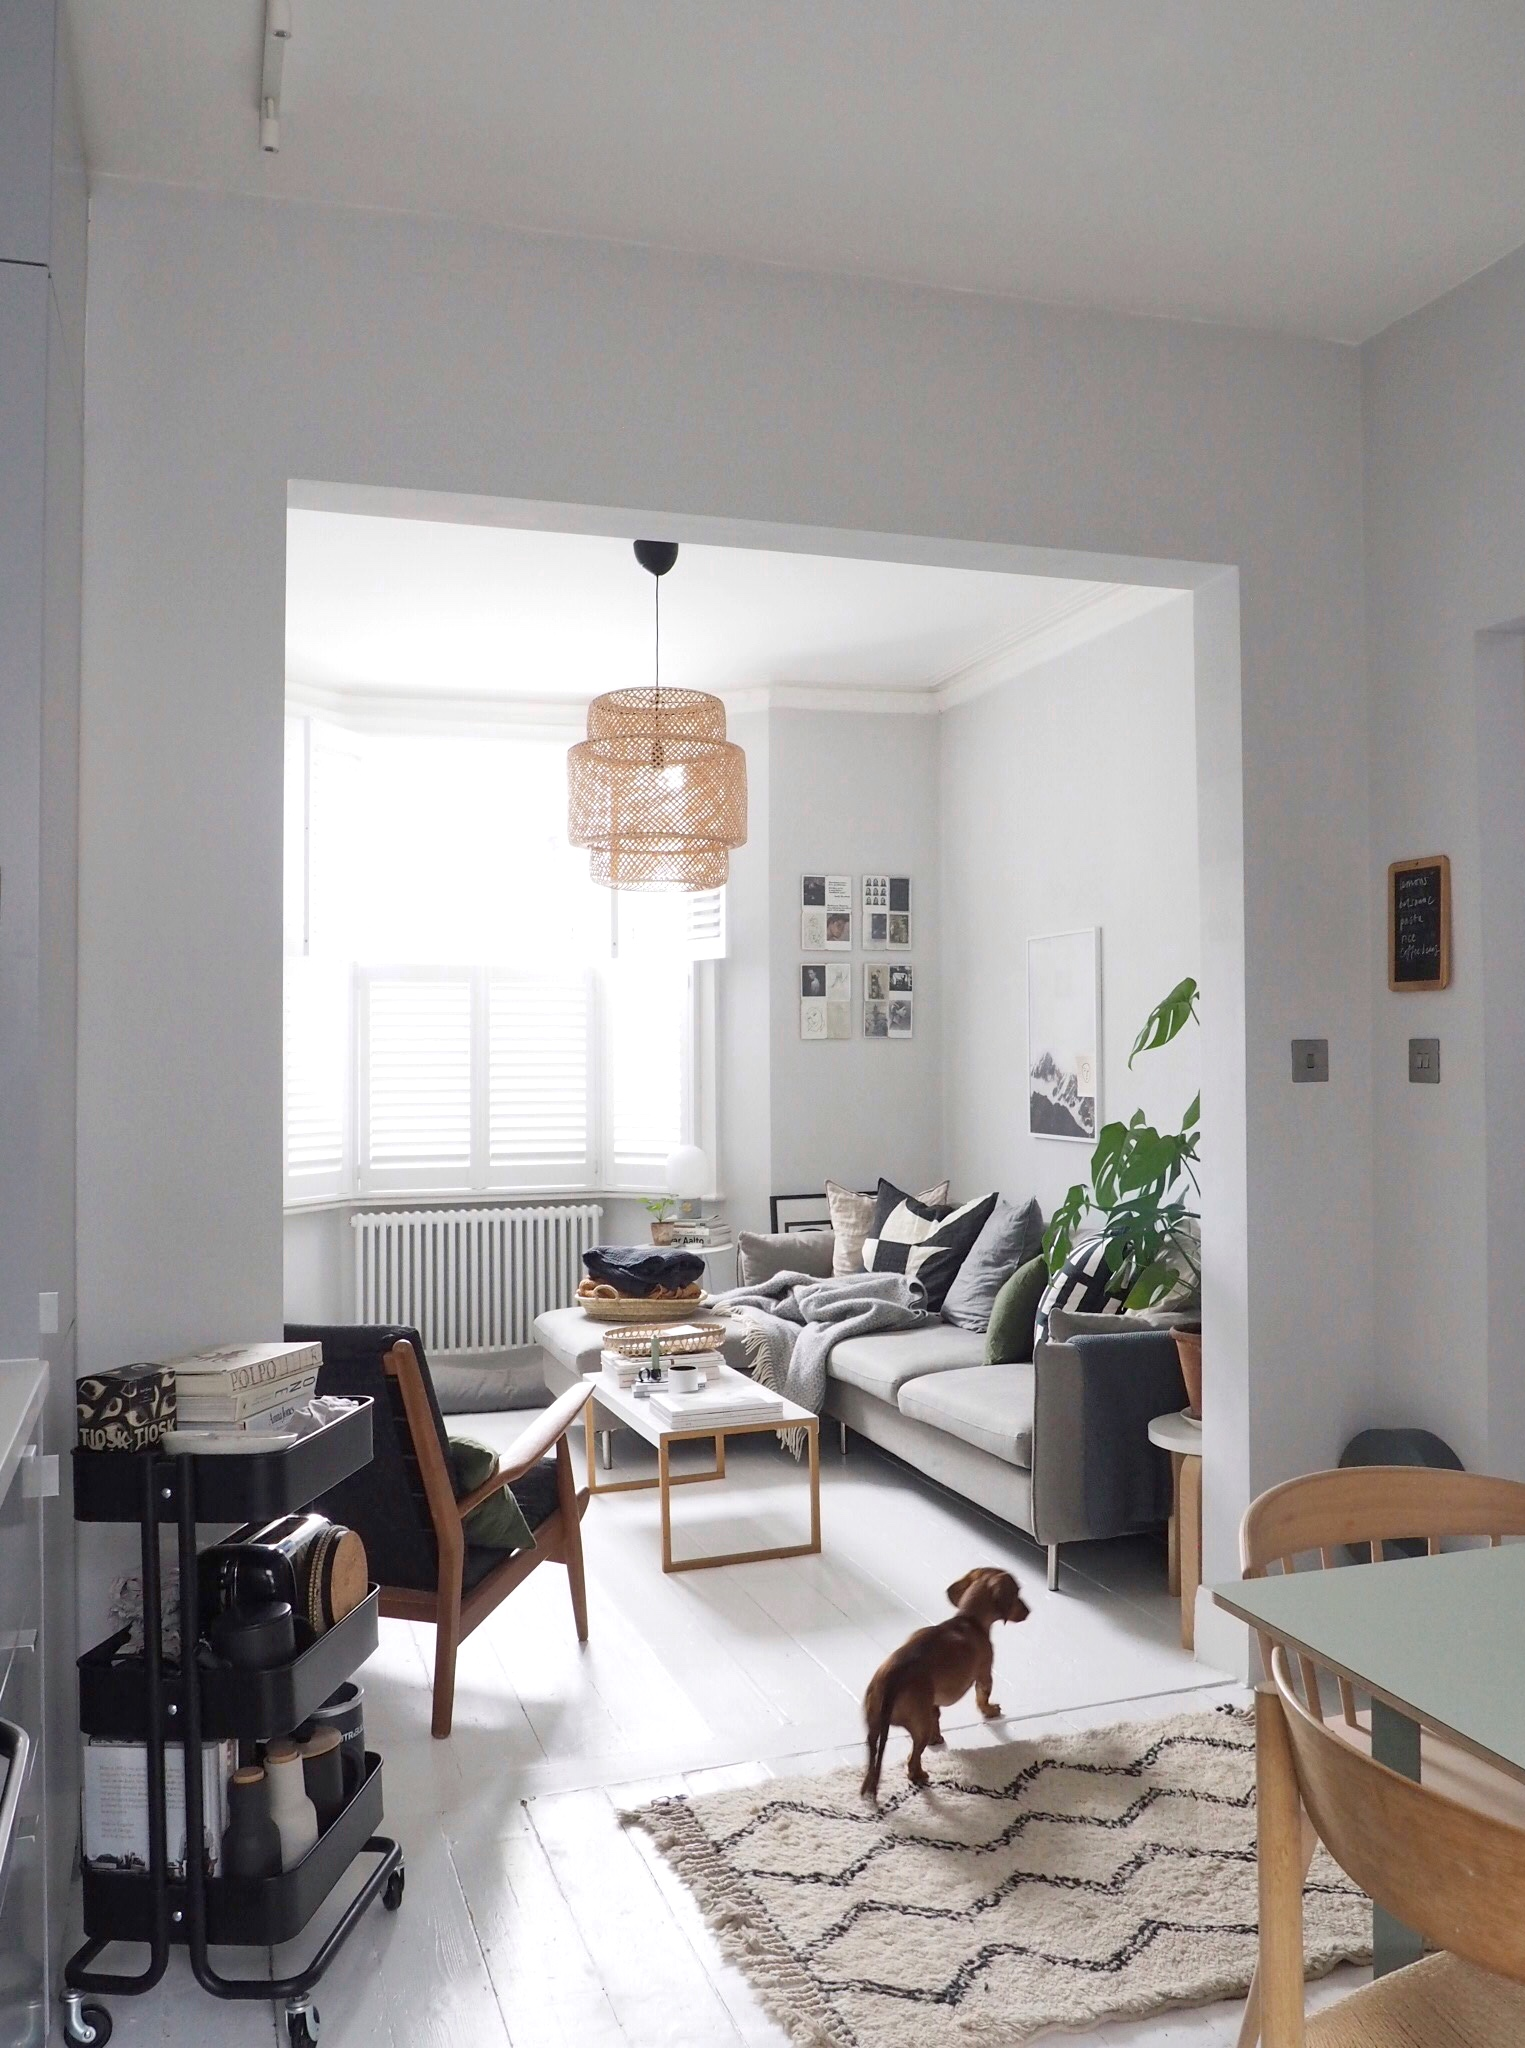 Charmant Cate St Hill   Simple Interior Design   Scandinavian Style Living Room